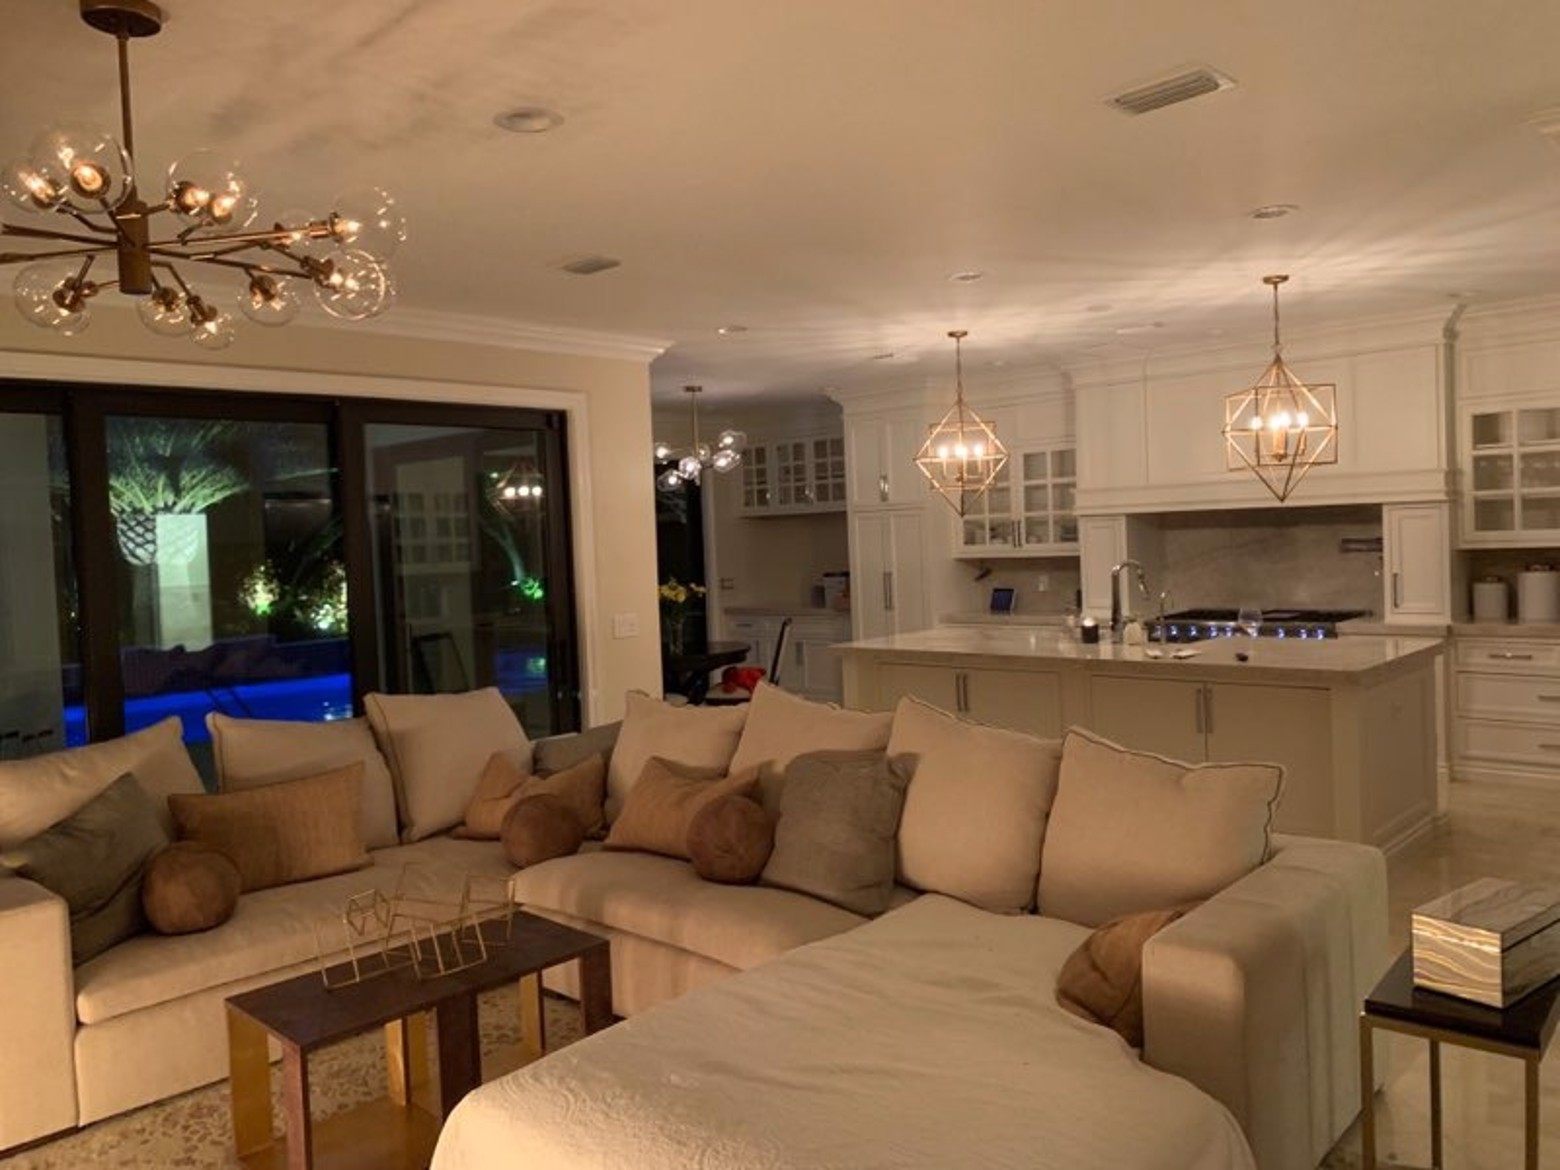 Florida Home By Janice Booker Furnitureland South